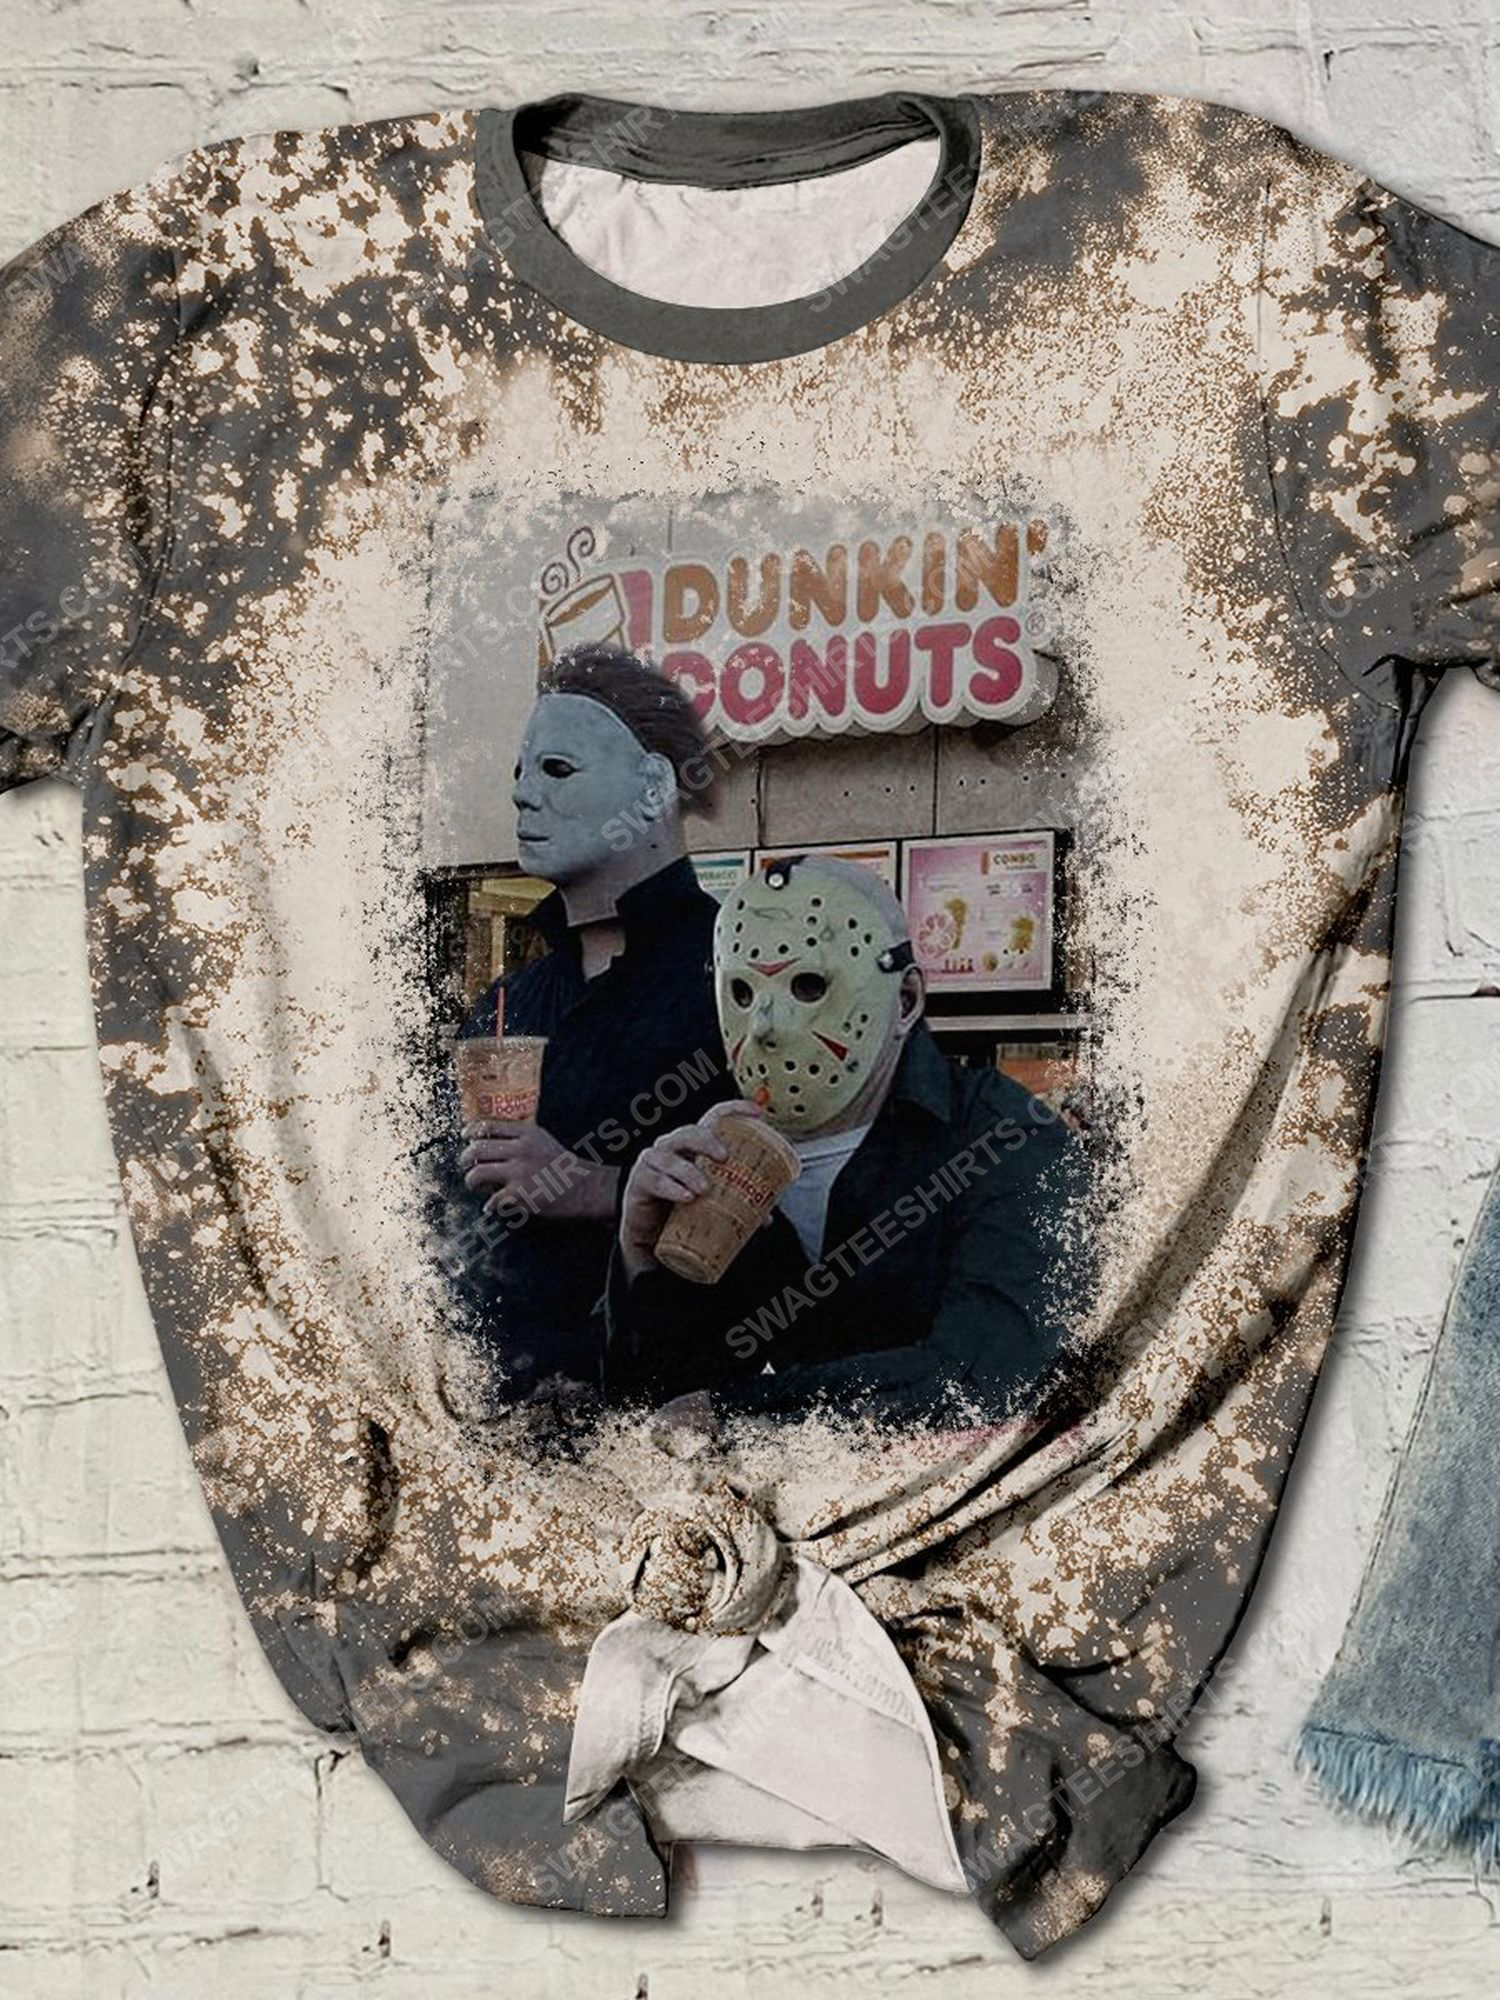 Halloween horror movie characters dunkin donuts bleached shirt 1 - Copy (2)